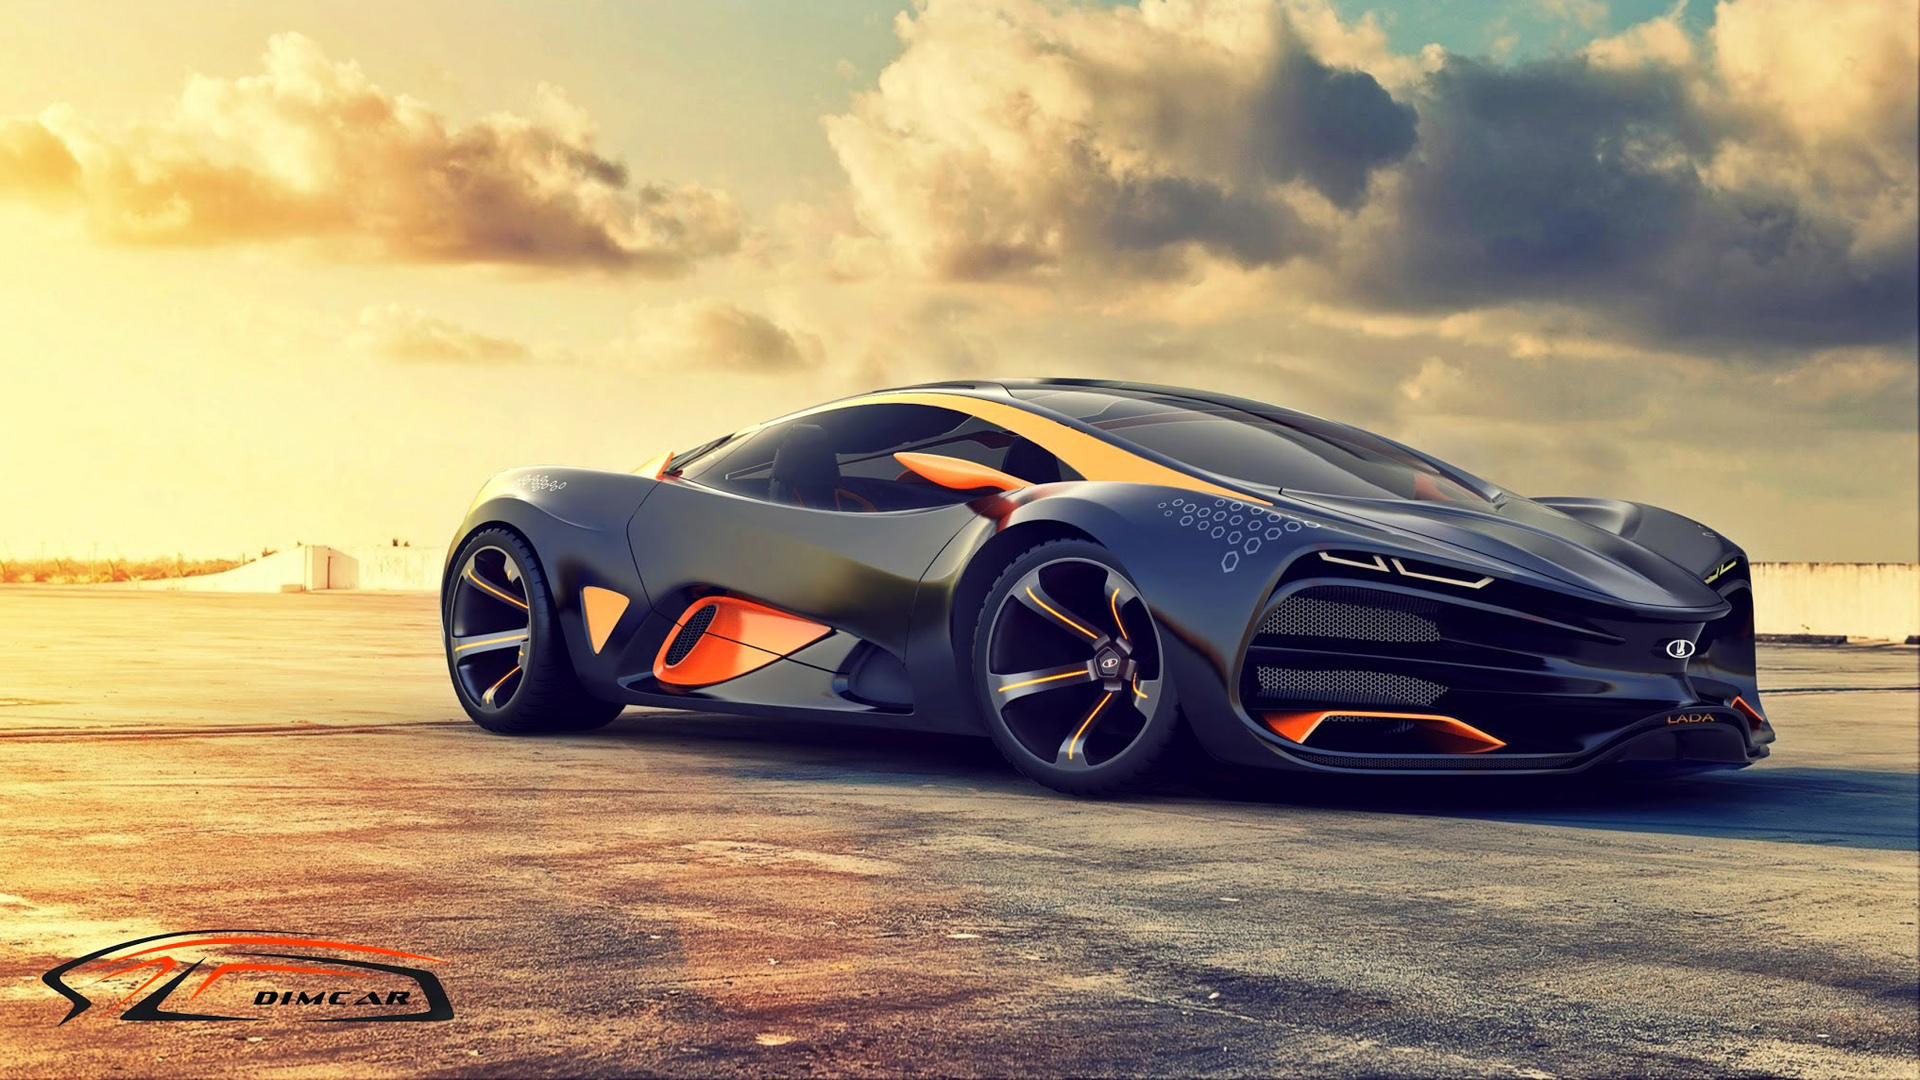 2015 Lada Raven Supercar Concept 2 Wallpaper HD Car 1920x1080